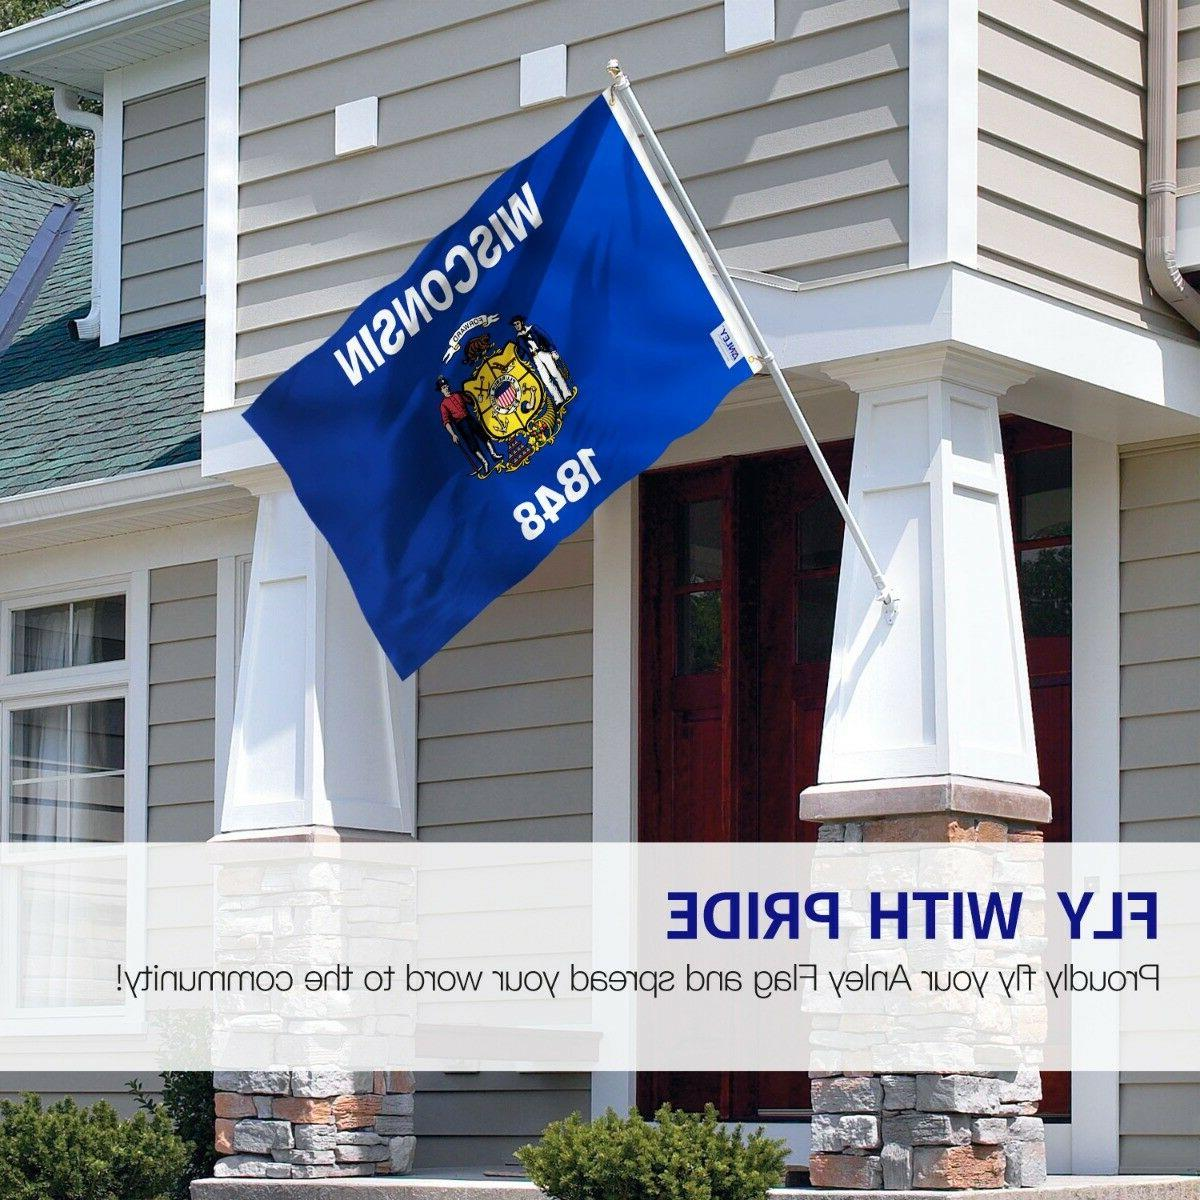 Anley Fly Foot Wisconsin WI Flags